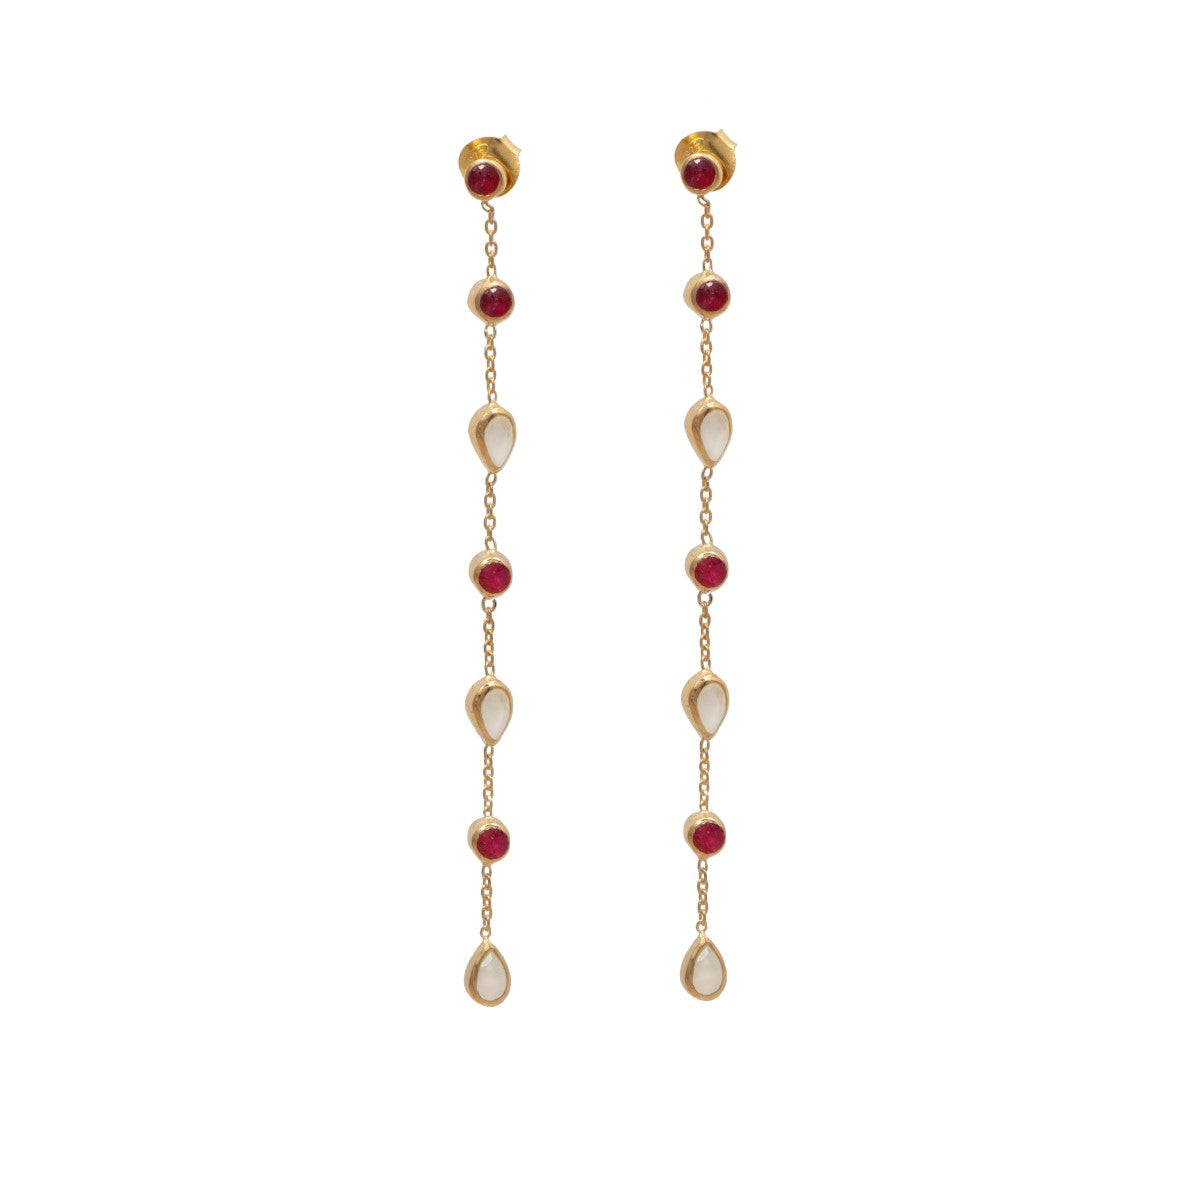 Long fine earrings with small round and teardrop gemstones - Ruby Quartz and Moonstone